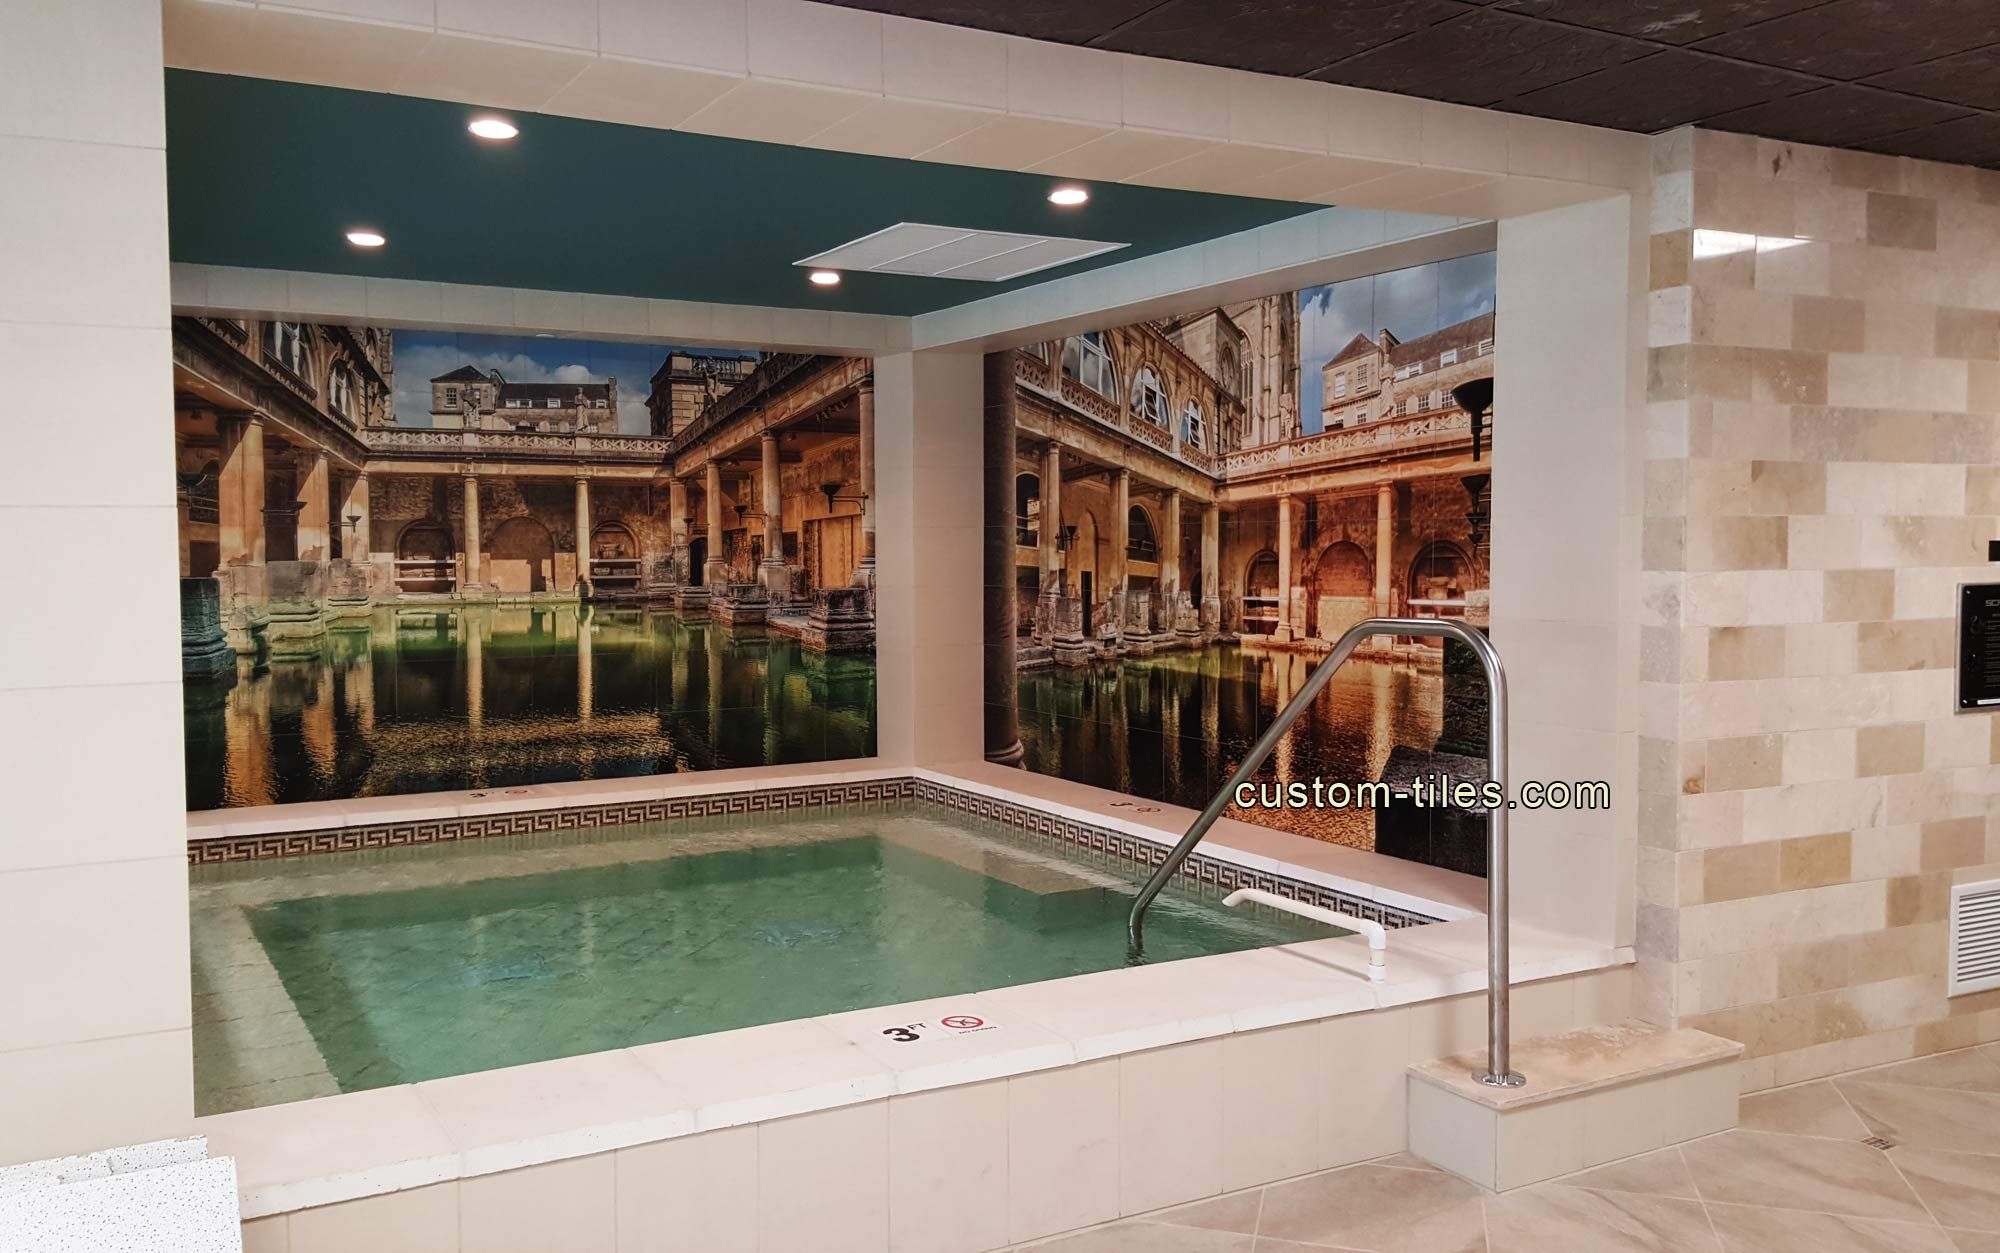 CUSTOM TILE MURAL Pictures On Tile For Swimming Pool Area Edgewater - Ceramic tile stores nj